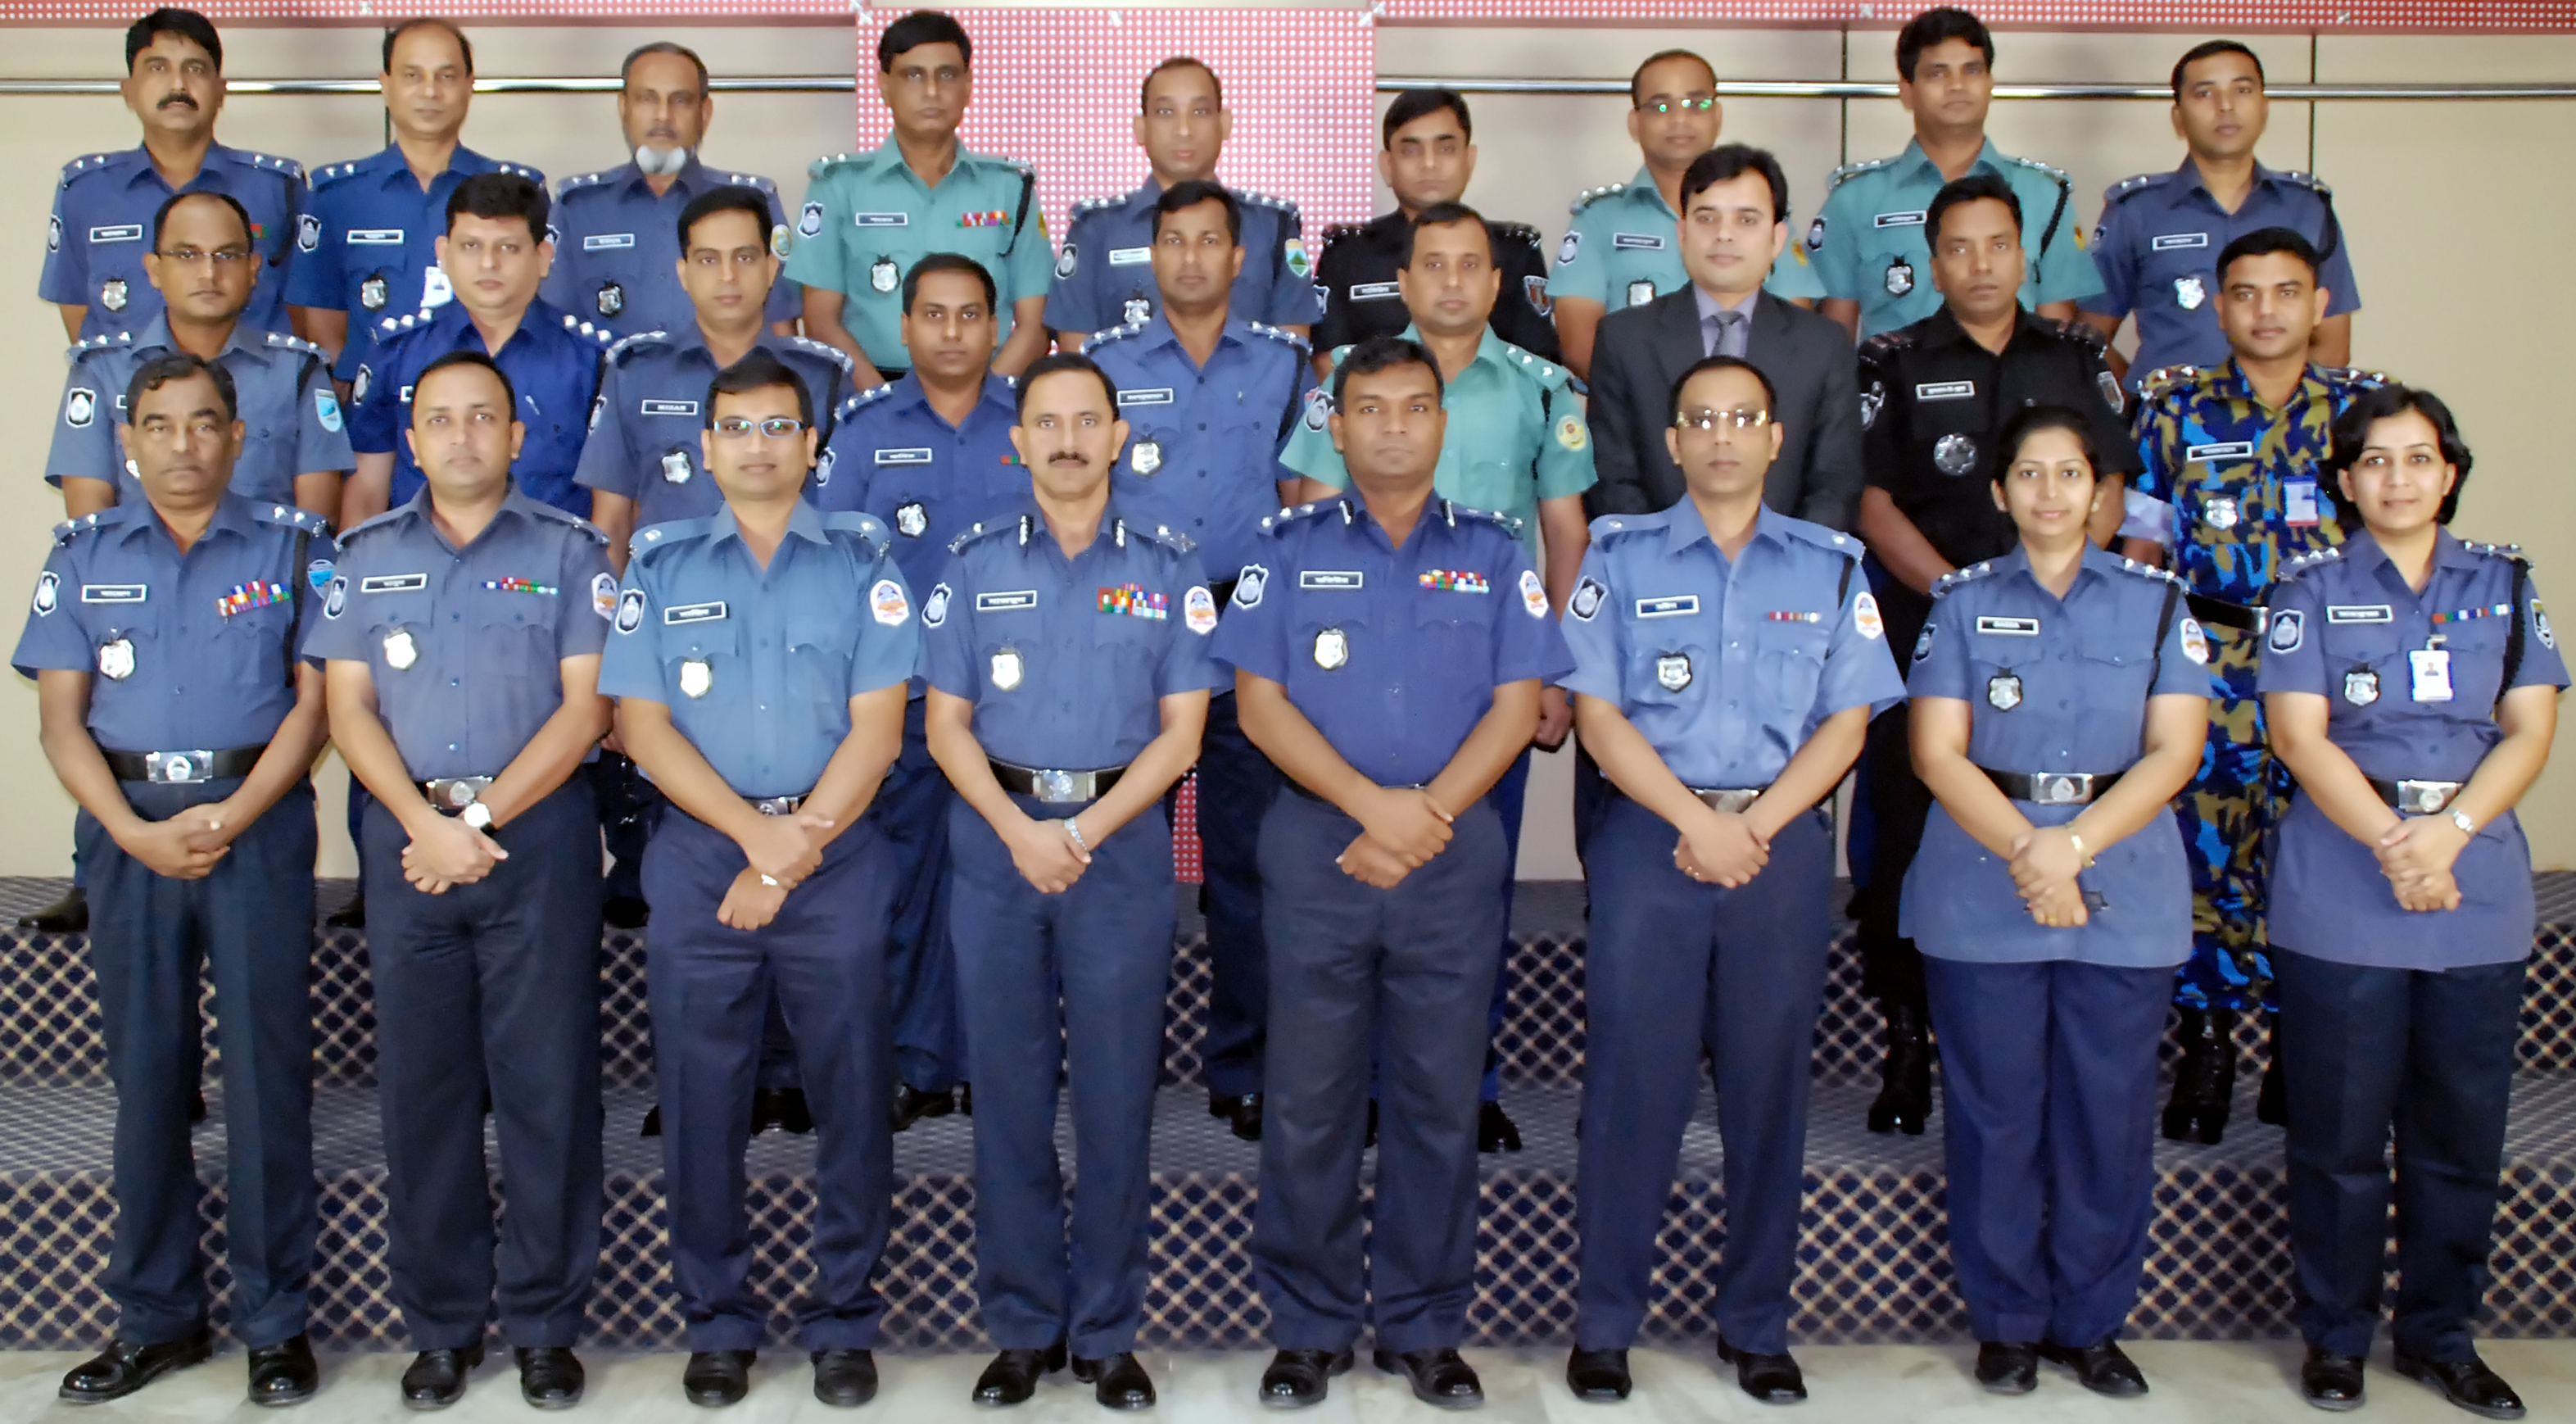 Participant of 18th Police Management Course.